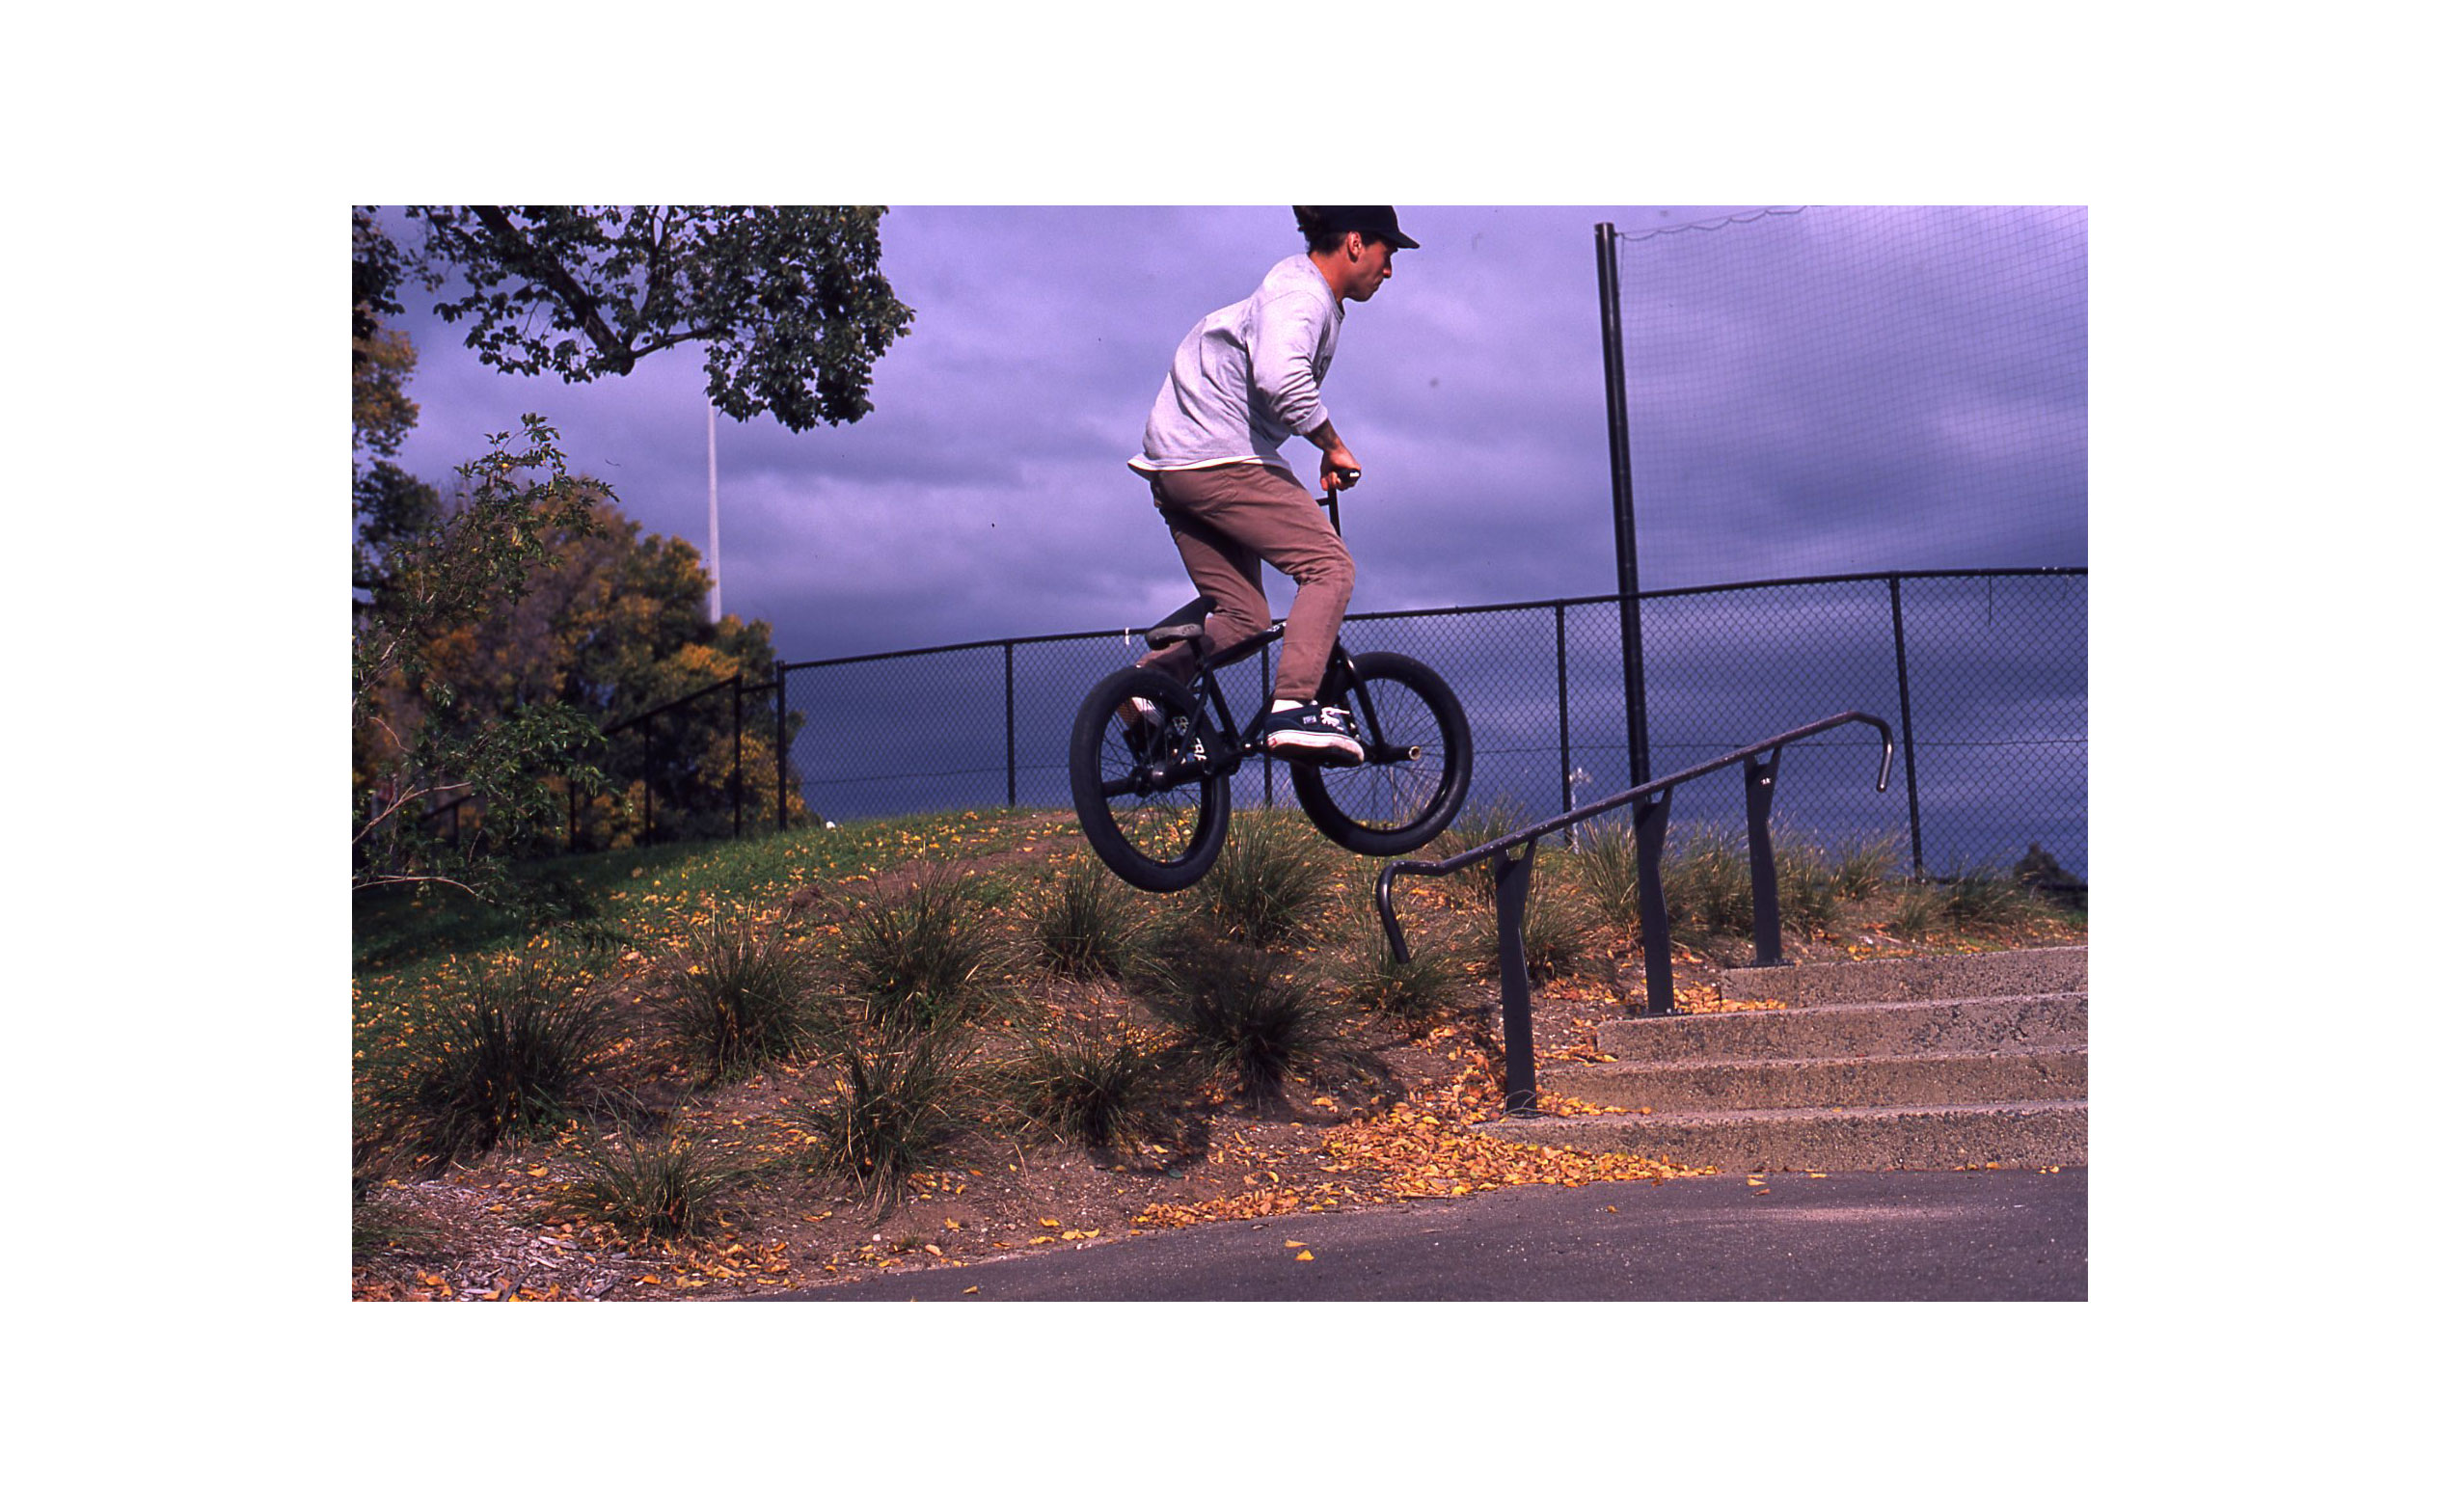 Jordan Aleppo - Jordan is an absolute animal ..when it comes to partying. He is also good at riding bikes.